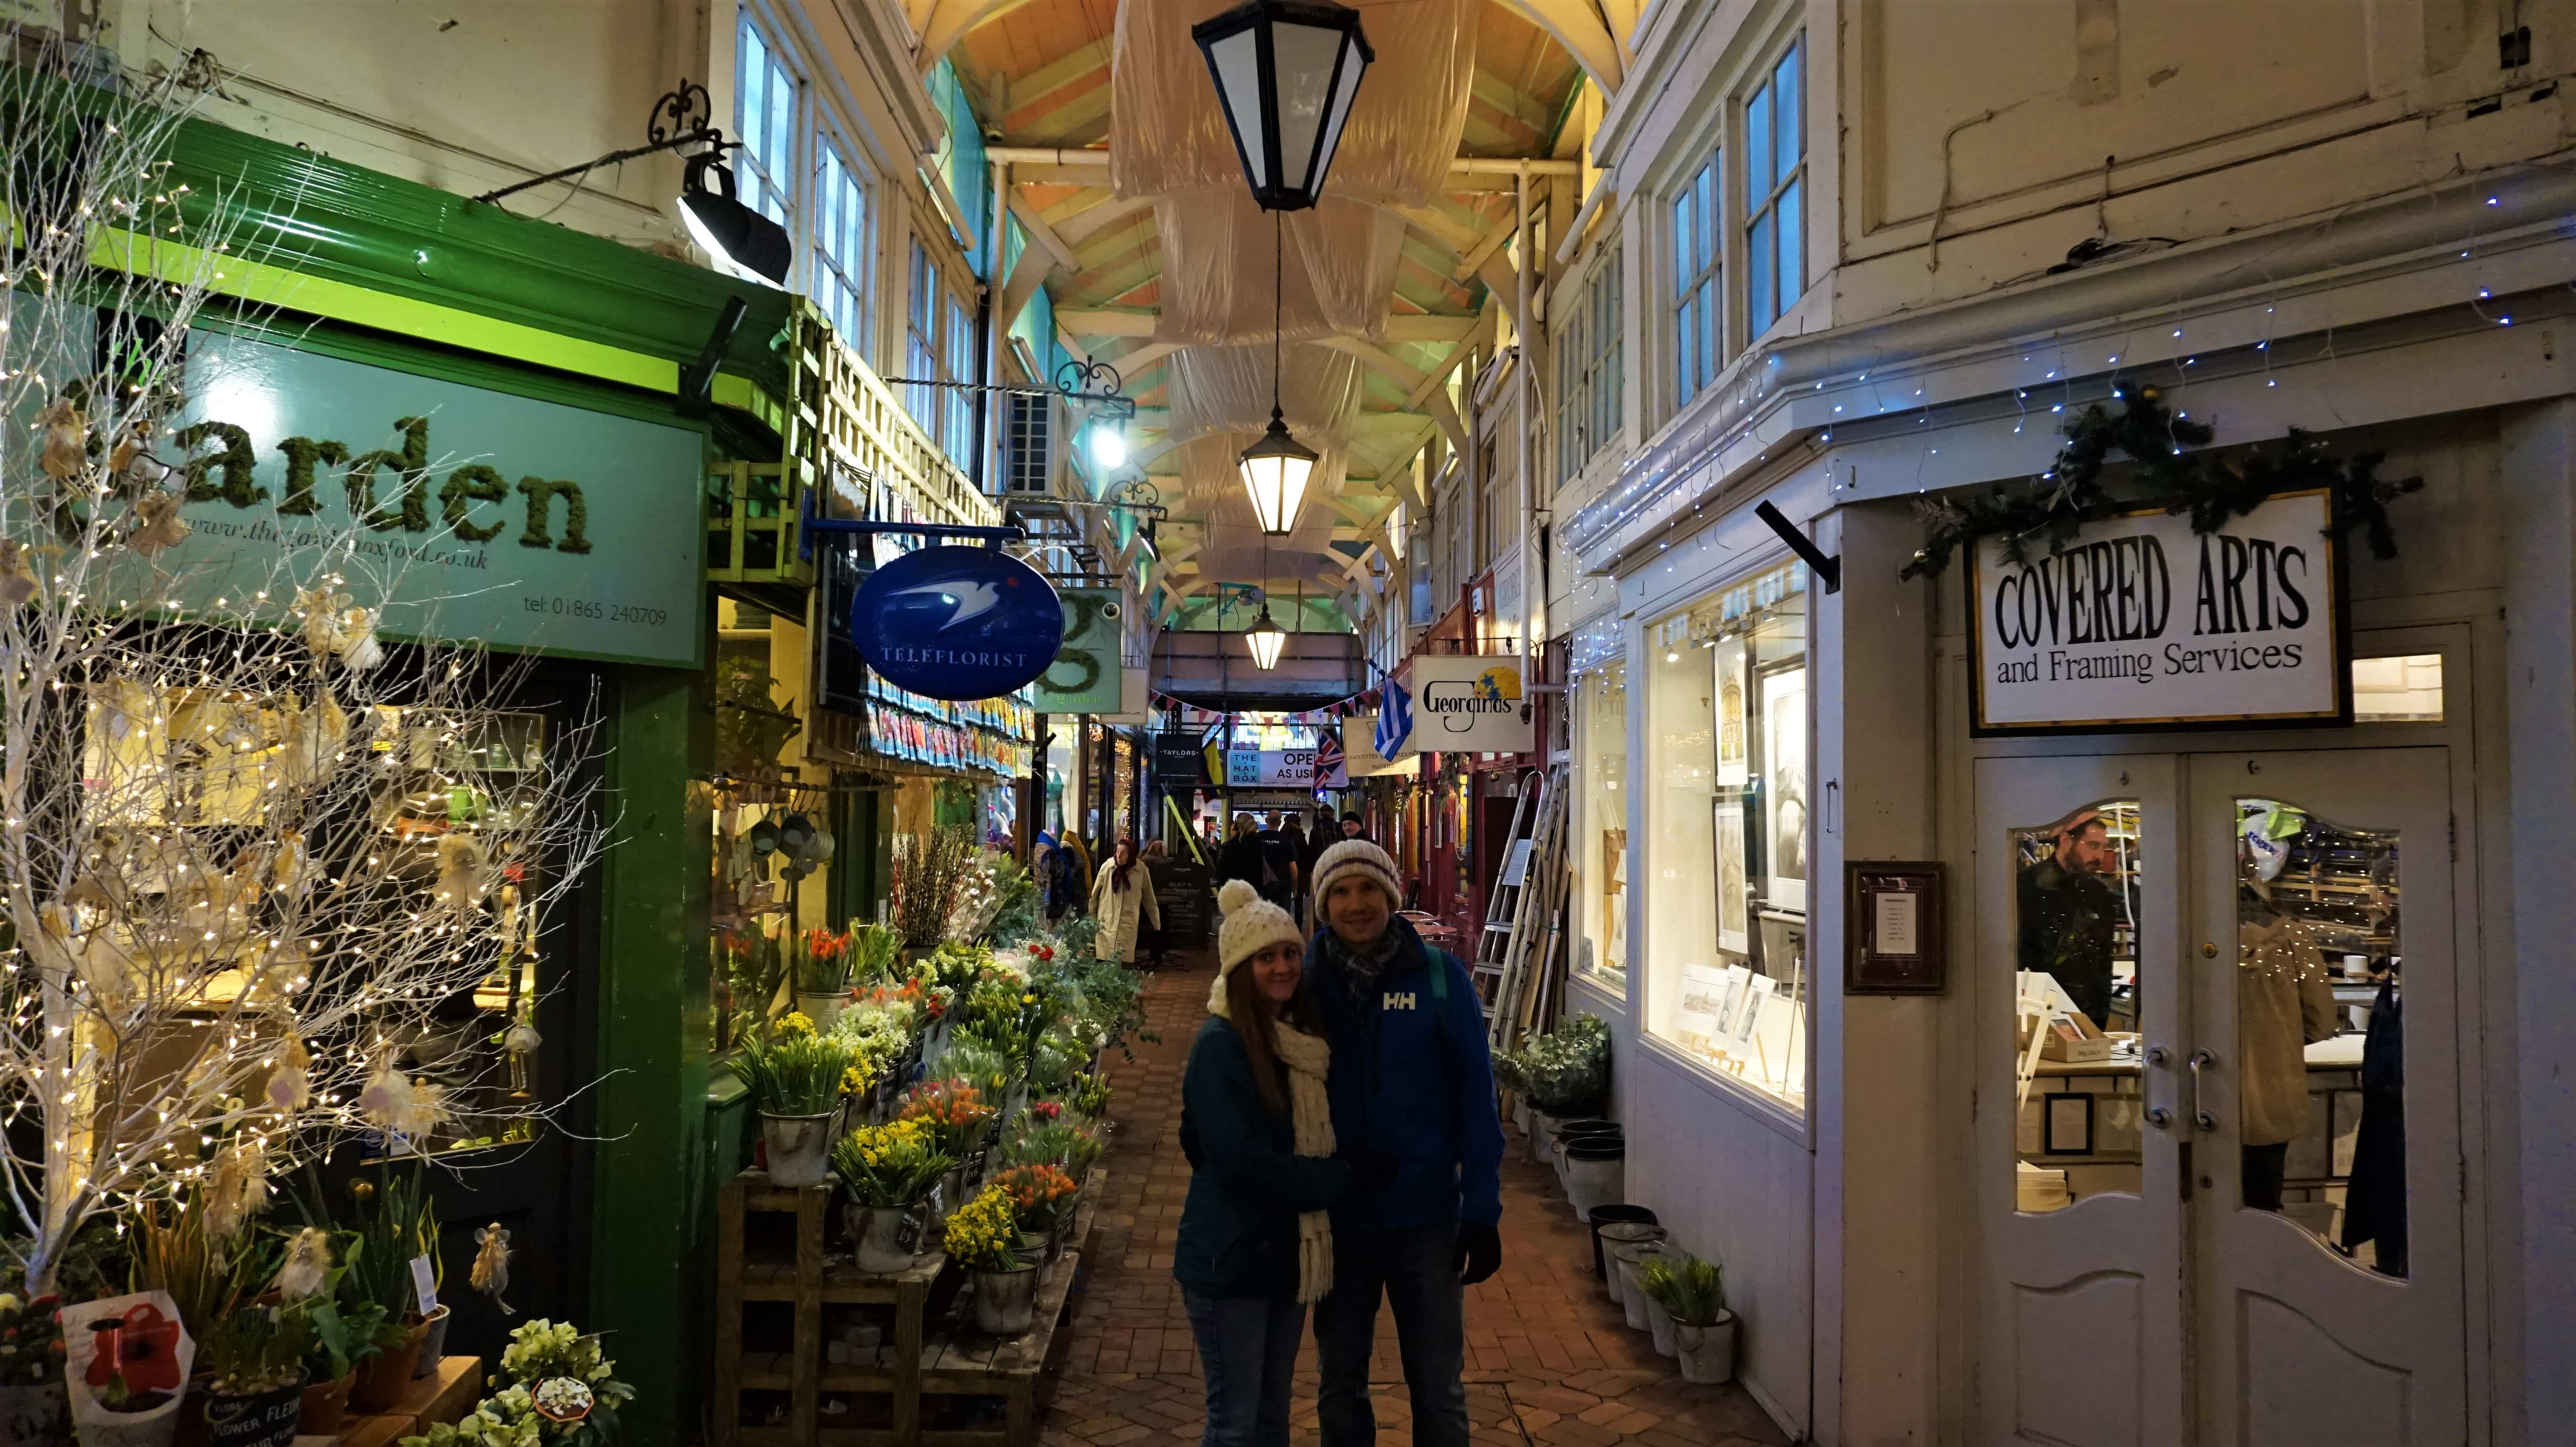 Us in the covered market on an Oxford City break